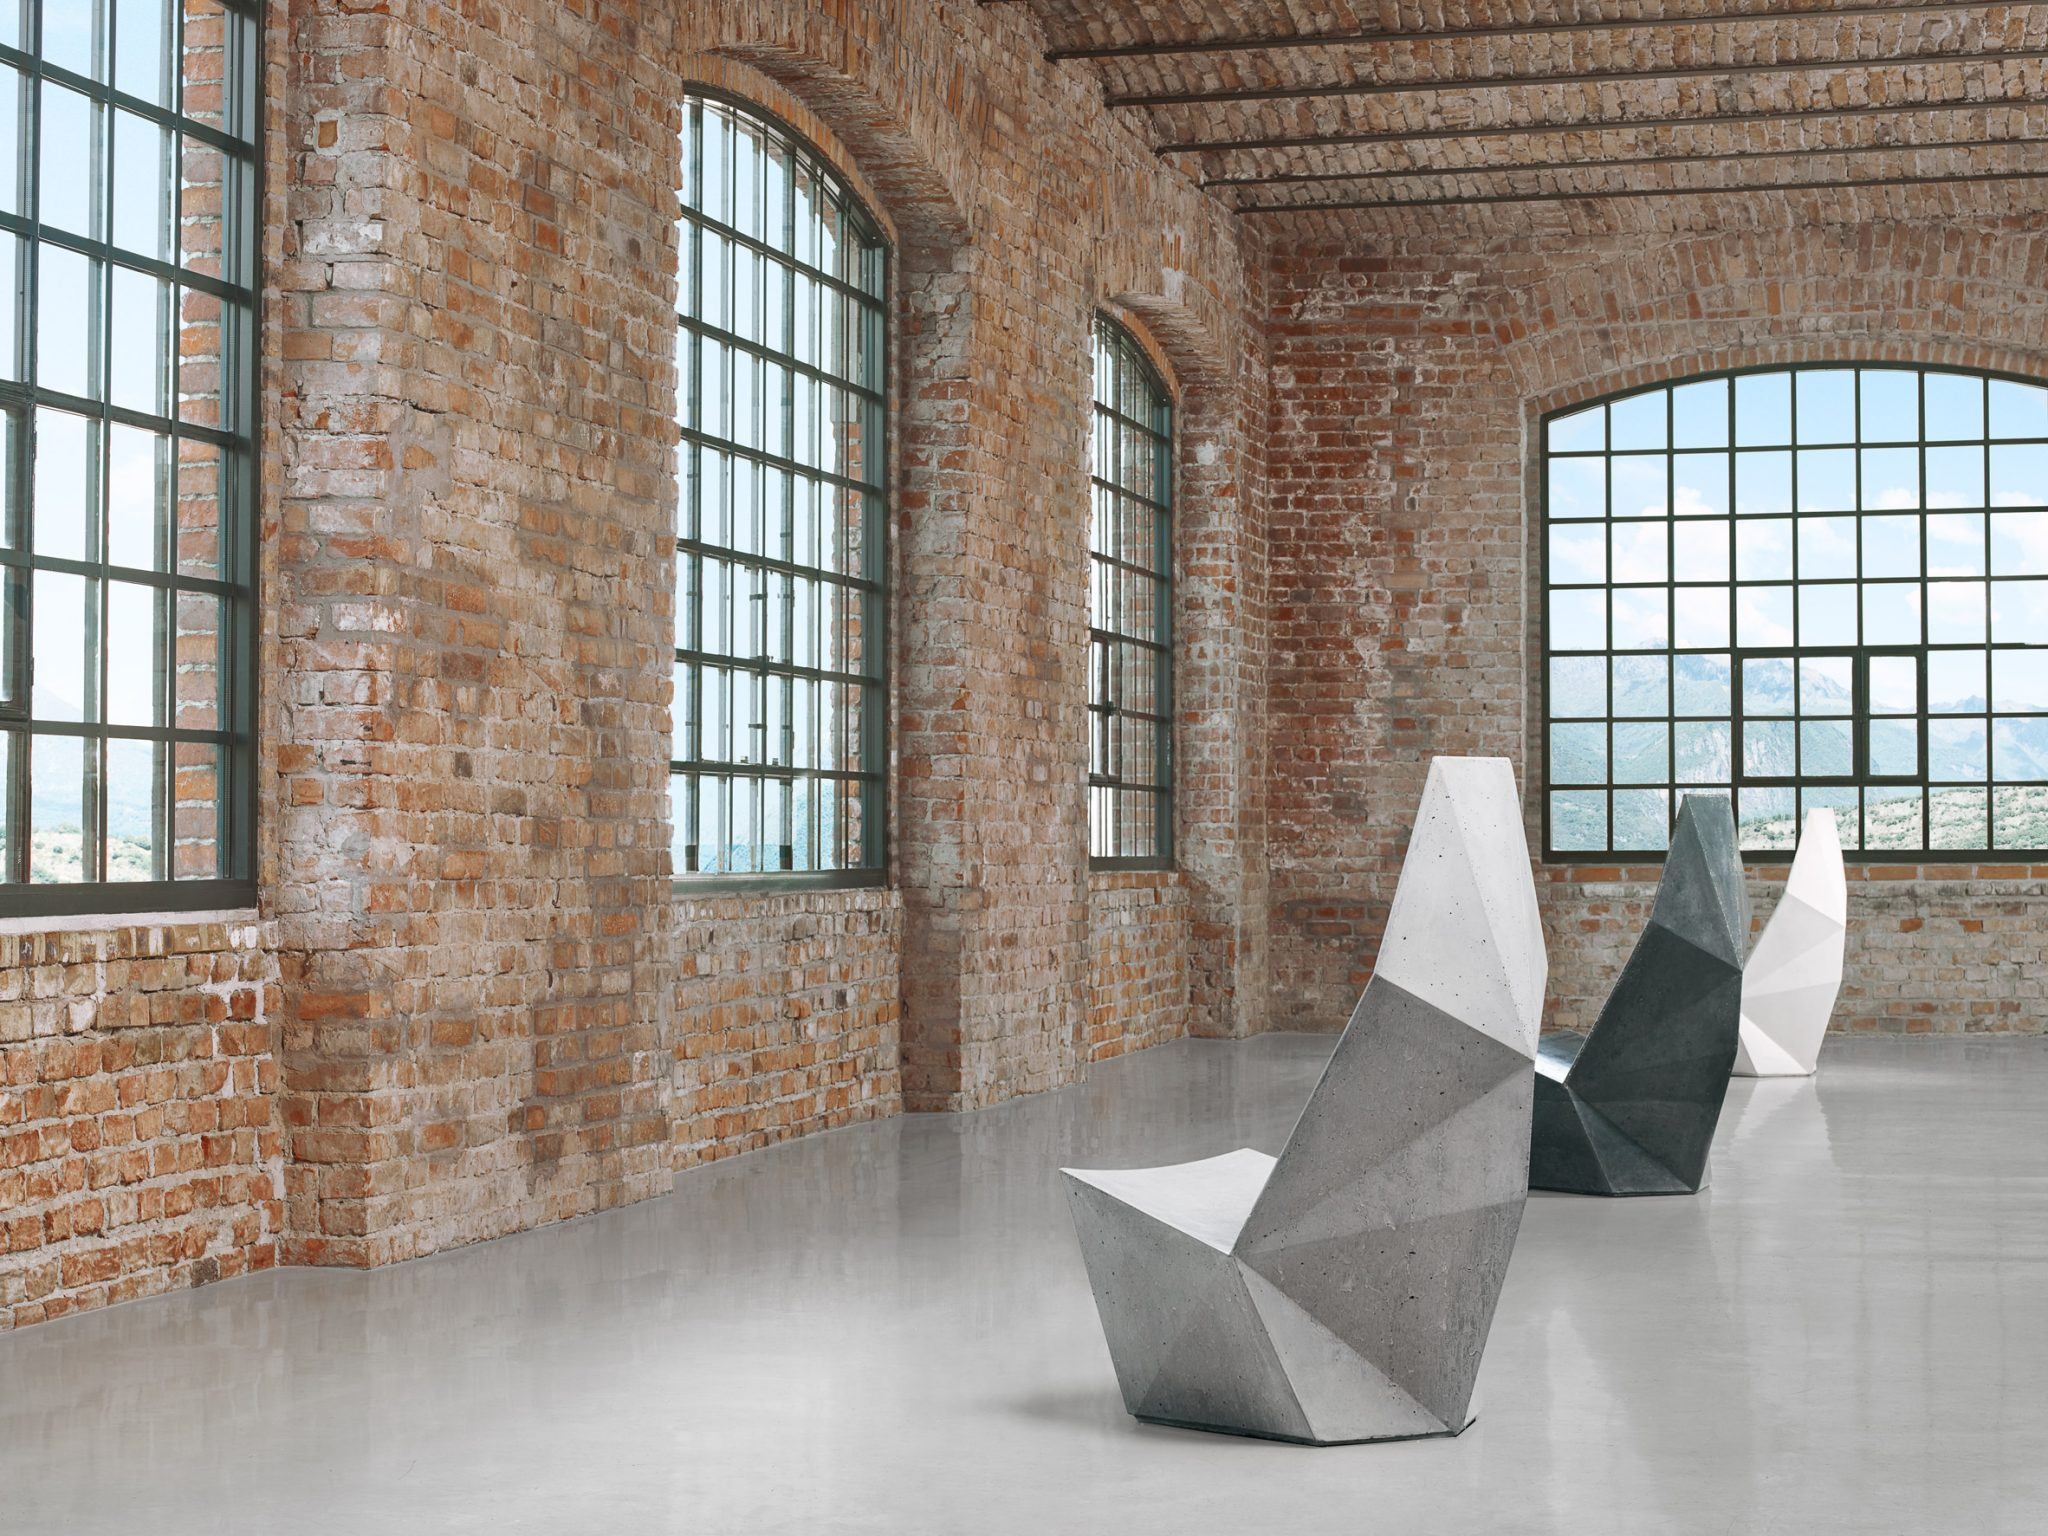 ivanka-qtz-concrete-edition-alexander-lotersztain-design-furniture_dezeen_2364_col_2